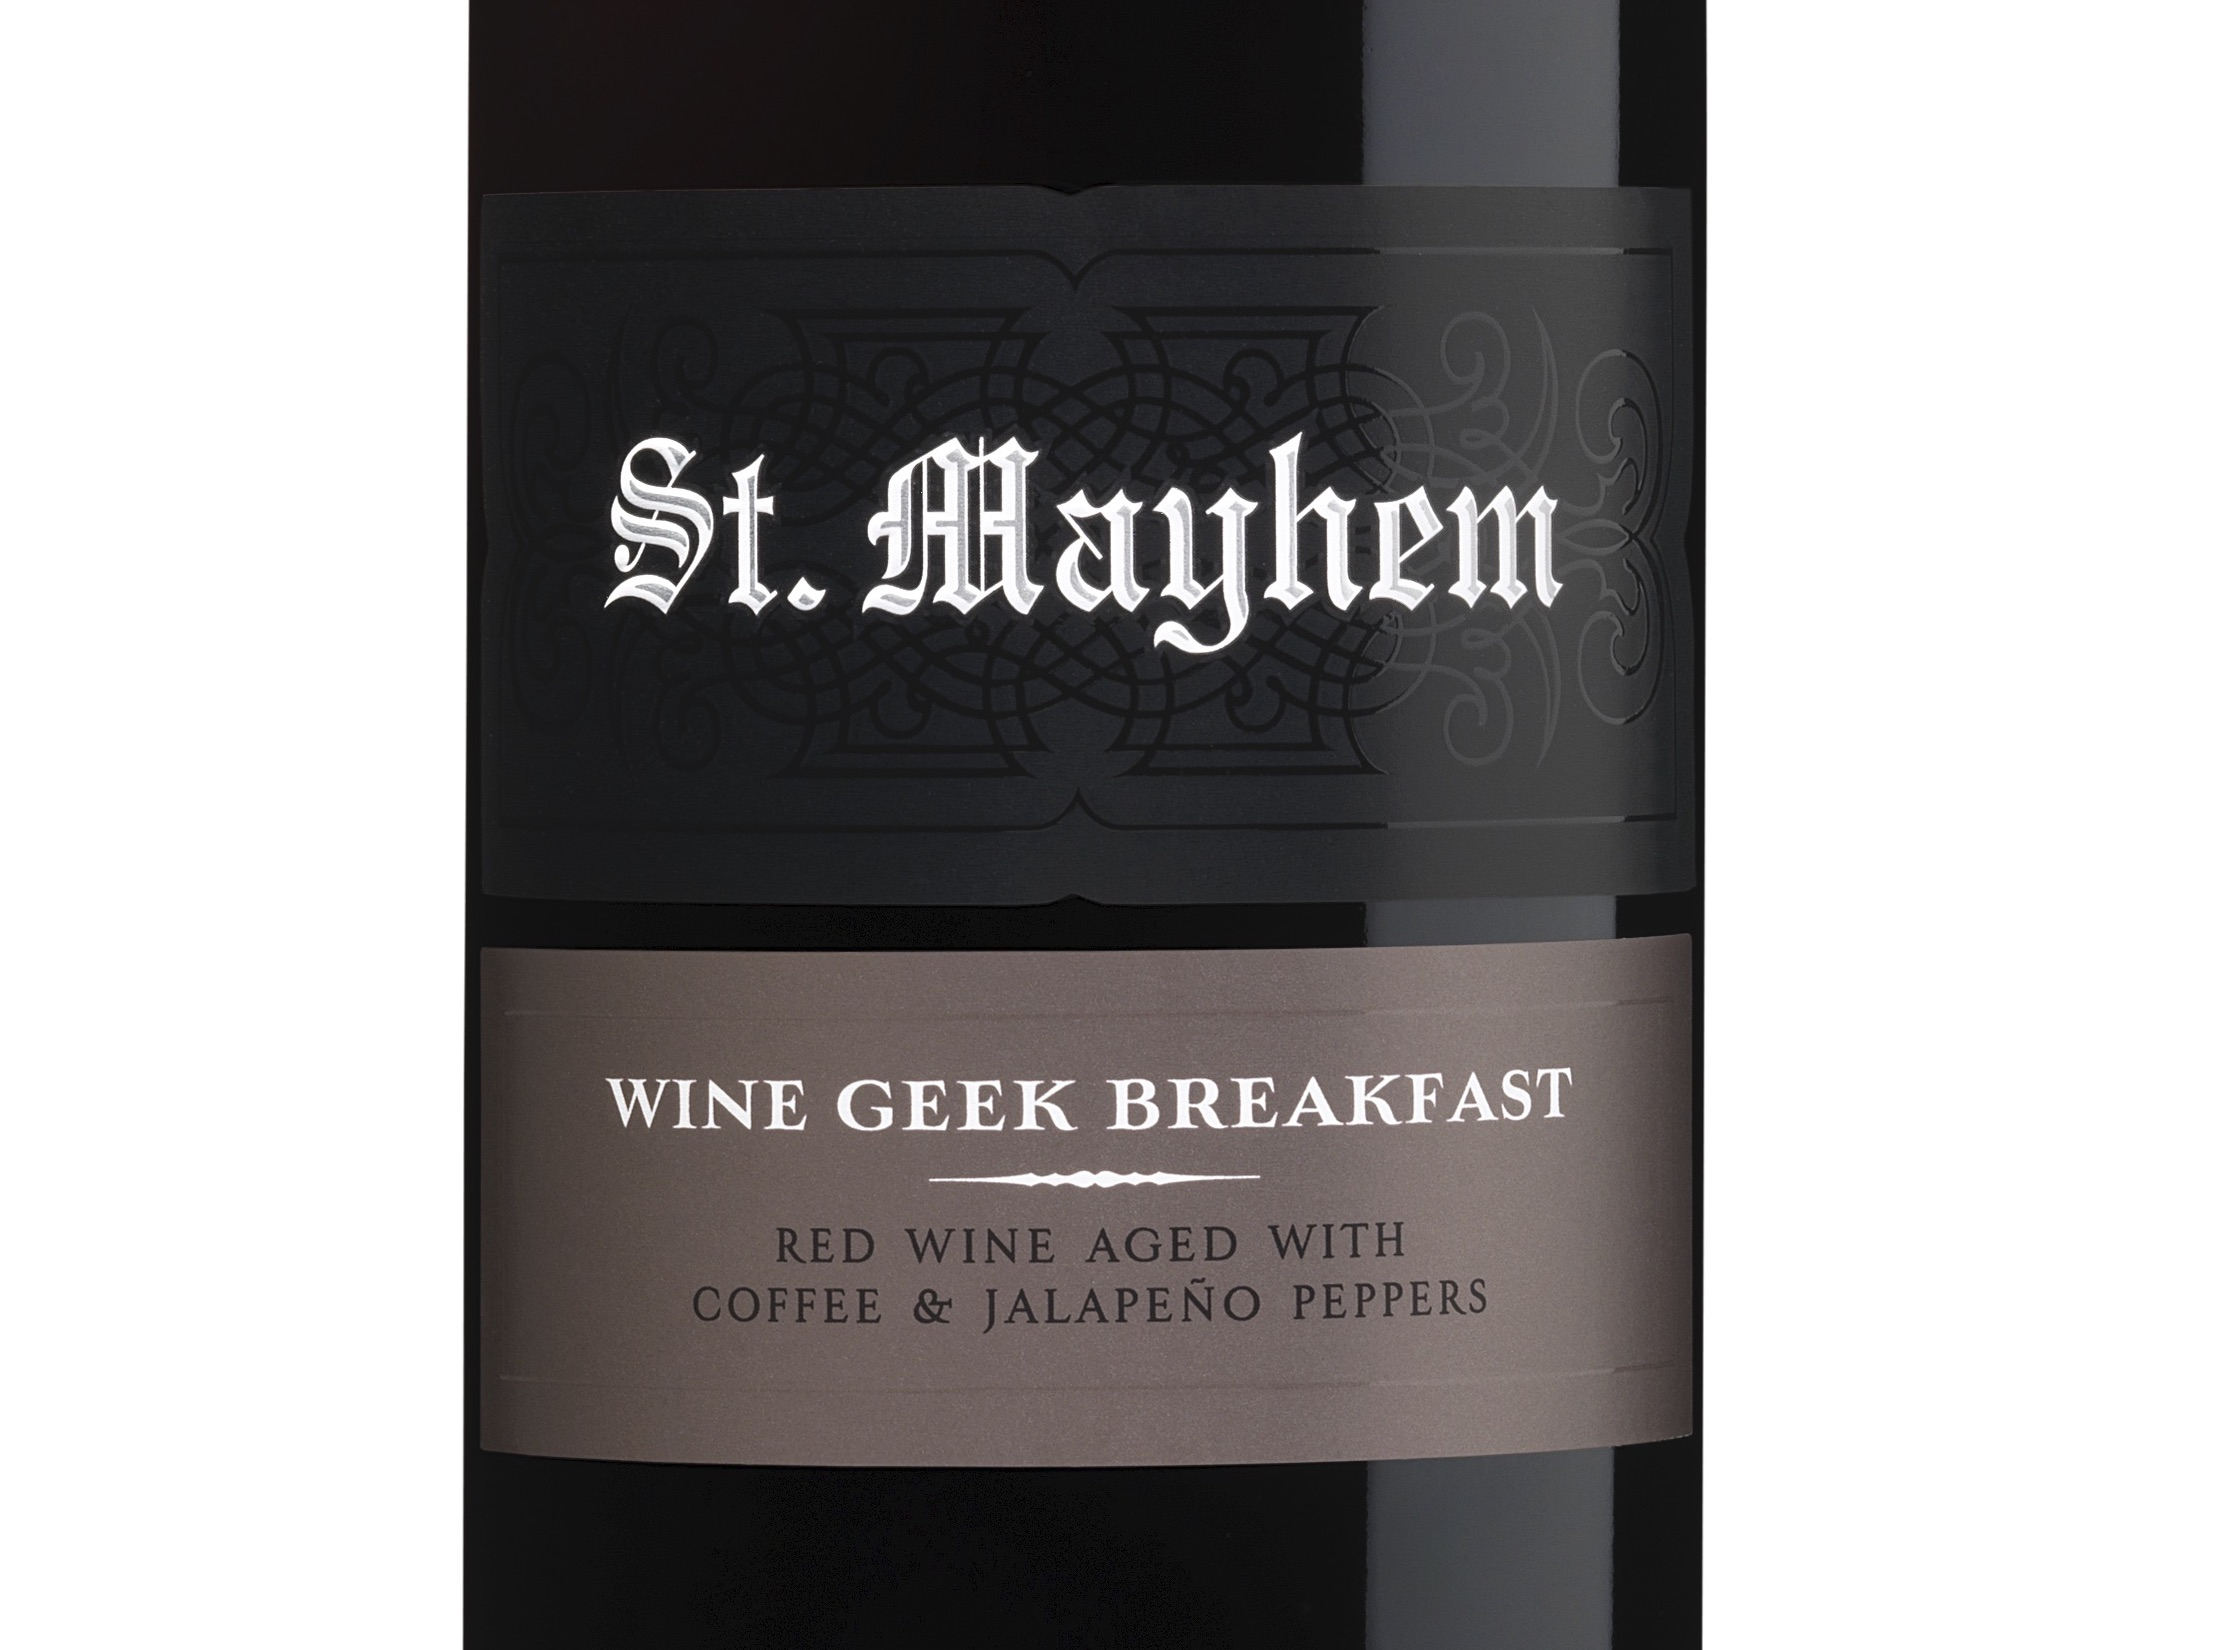 Making a Case Wine Geek Breakfast 12x750ml - Art+Farm Wine